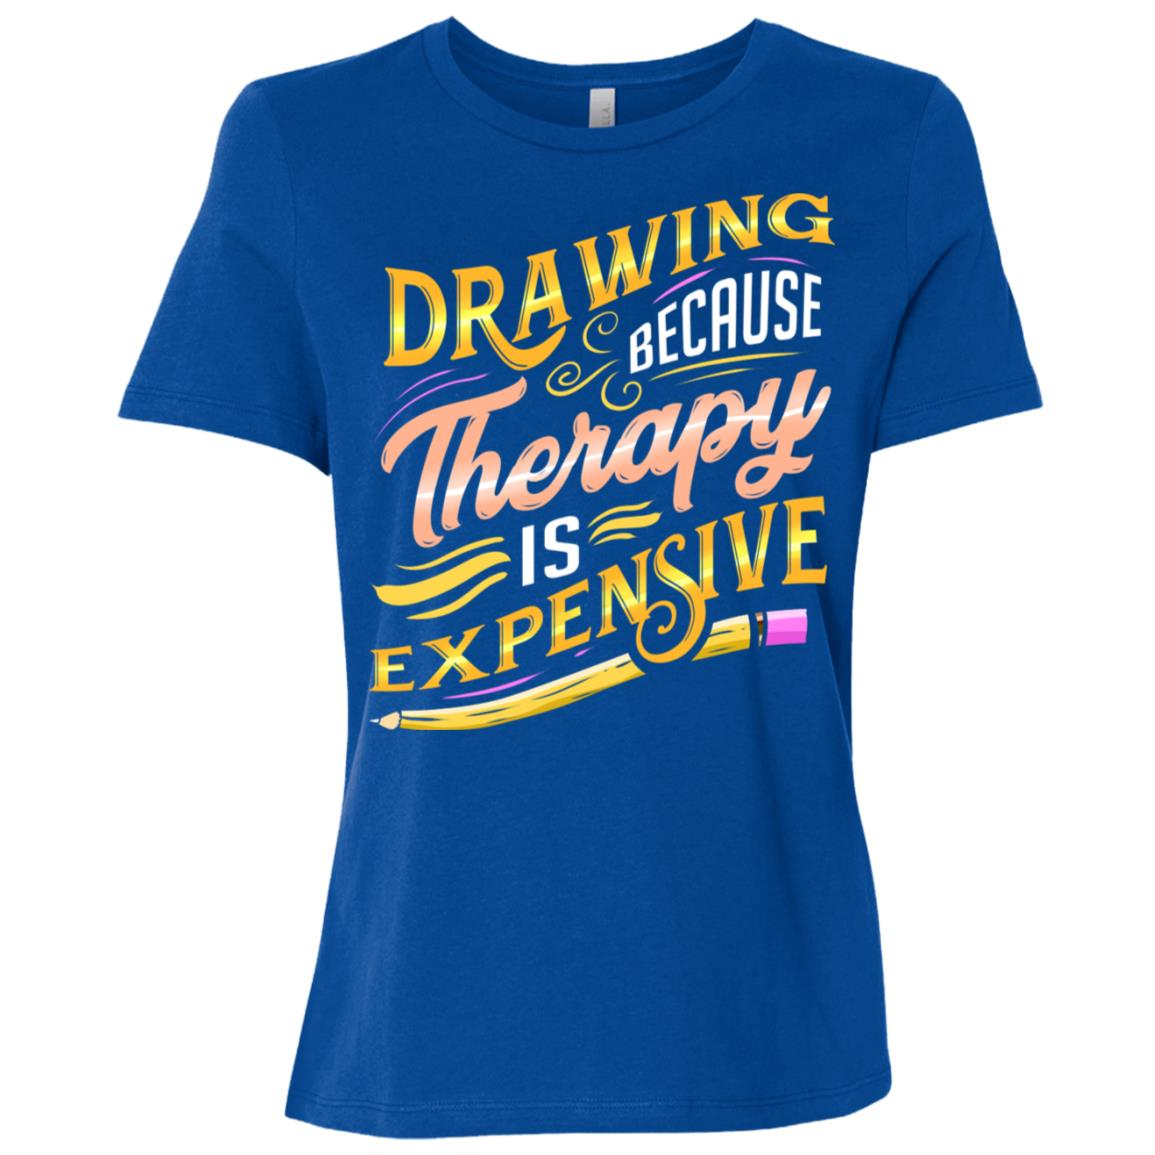 Artist Drawing Because Therapy Is Expensive Women Short Sleeve T-Shirt